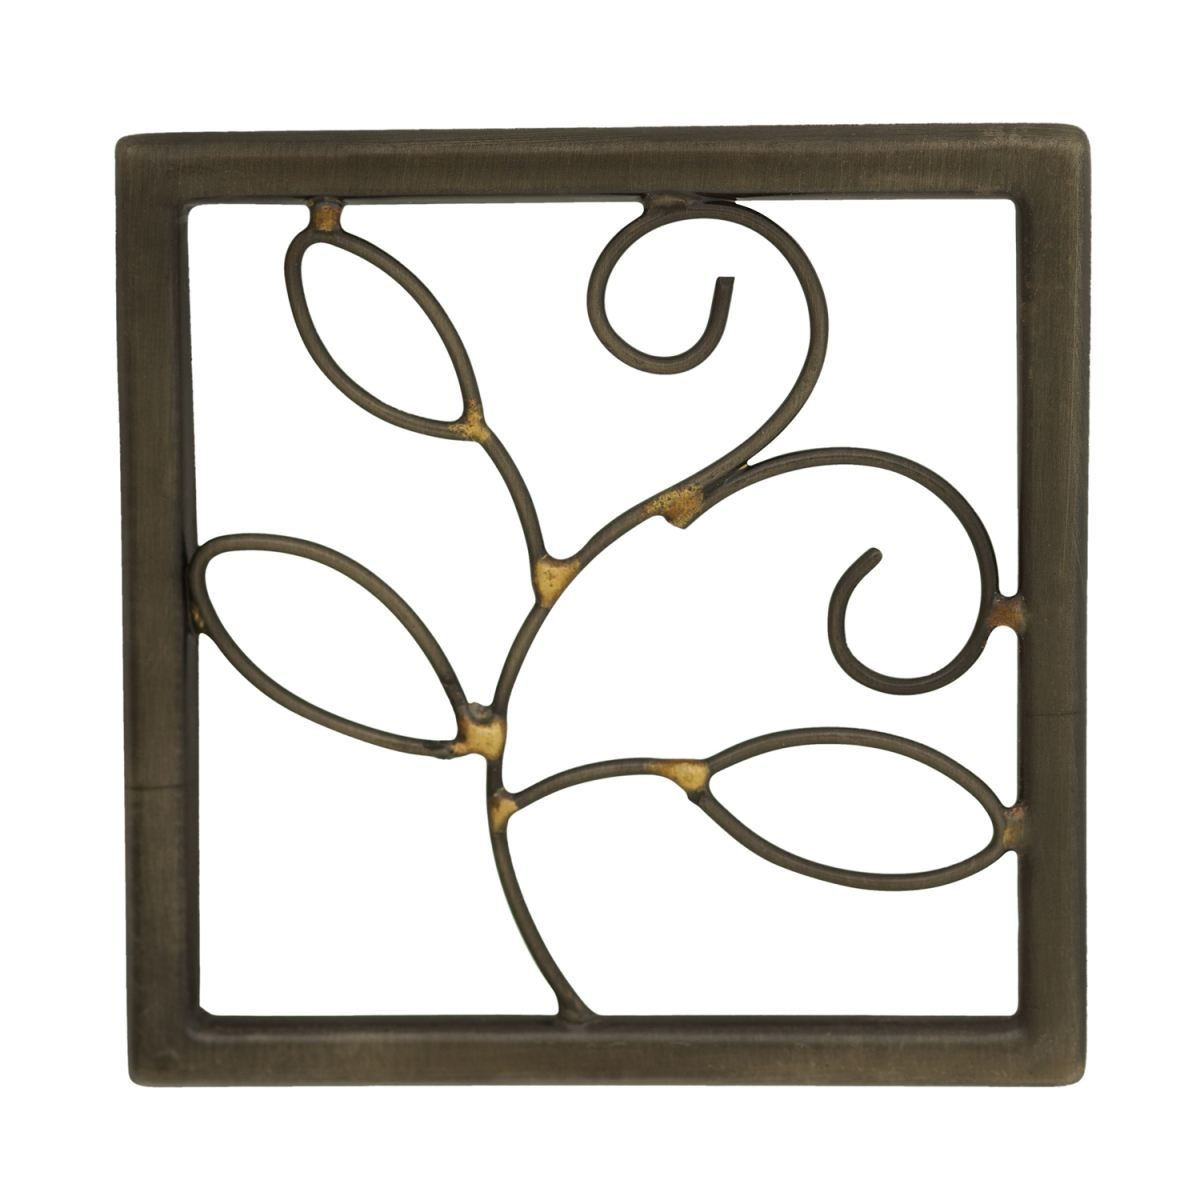 Scentsy Gallery Collection Frames | Cartoonjdi.co